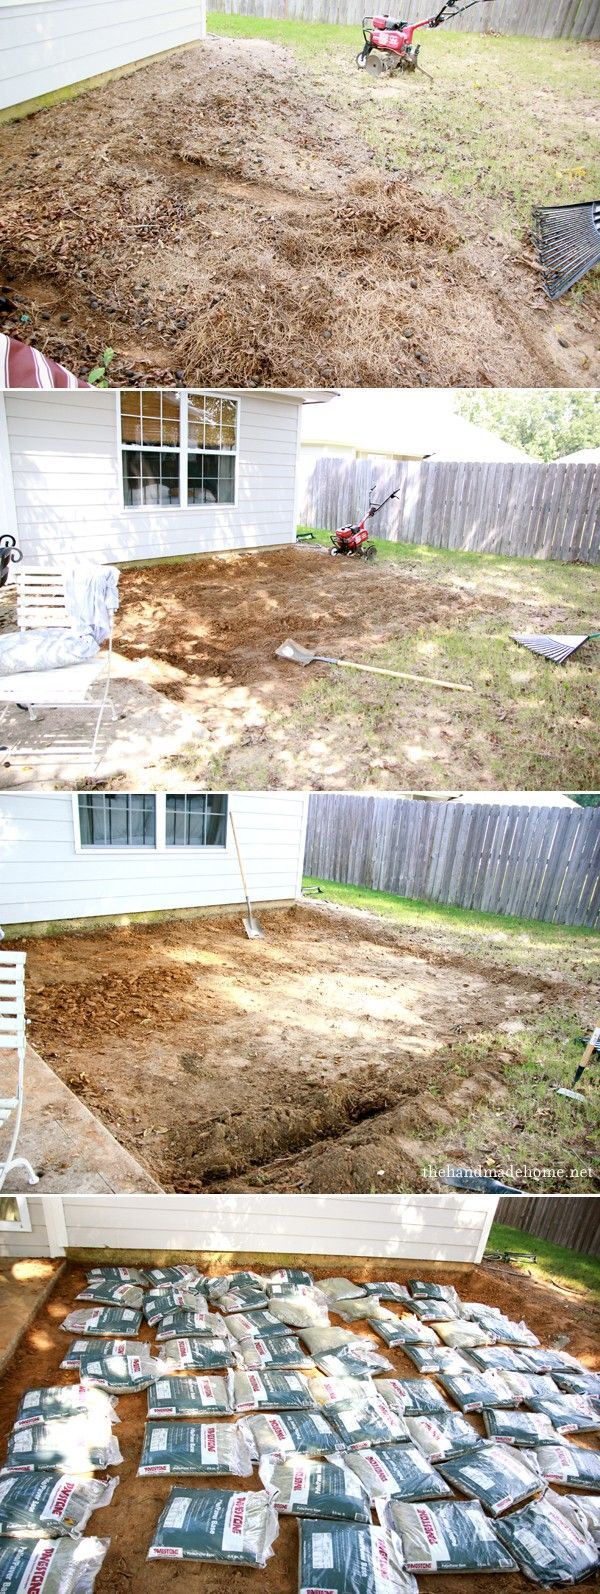 backyard bliss: installing patio pavers and a fire pit {diy patio} {diy fire pit}the handmade home